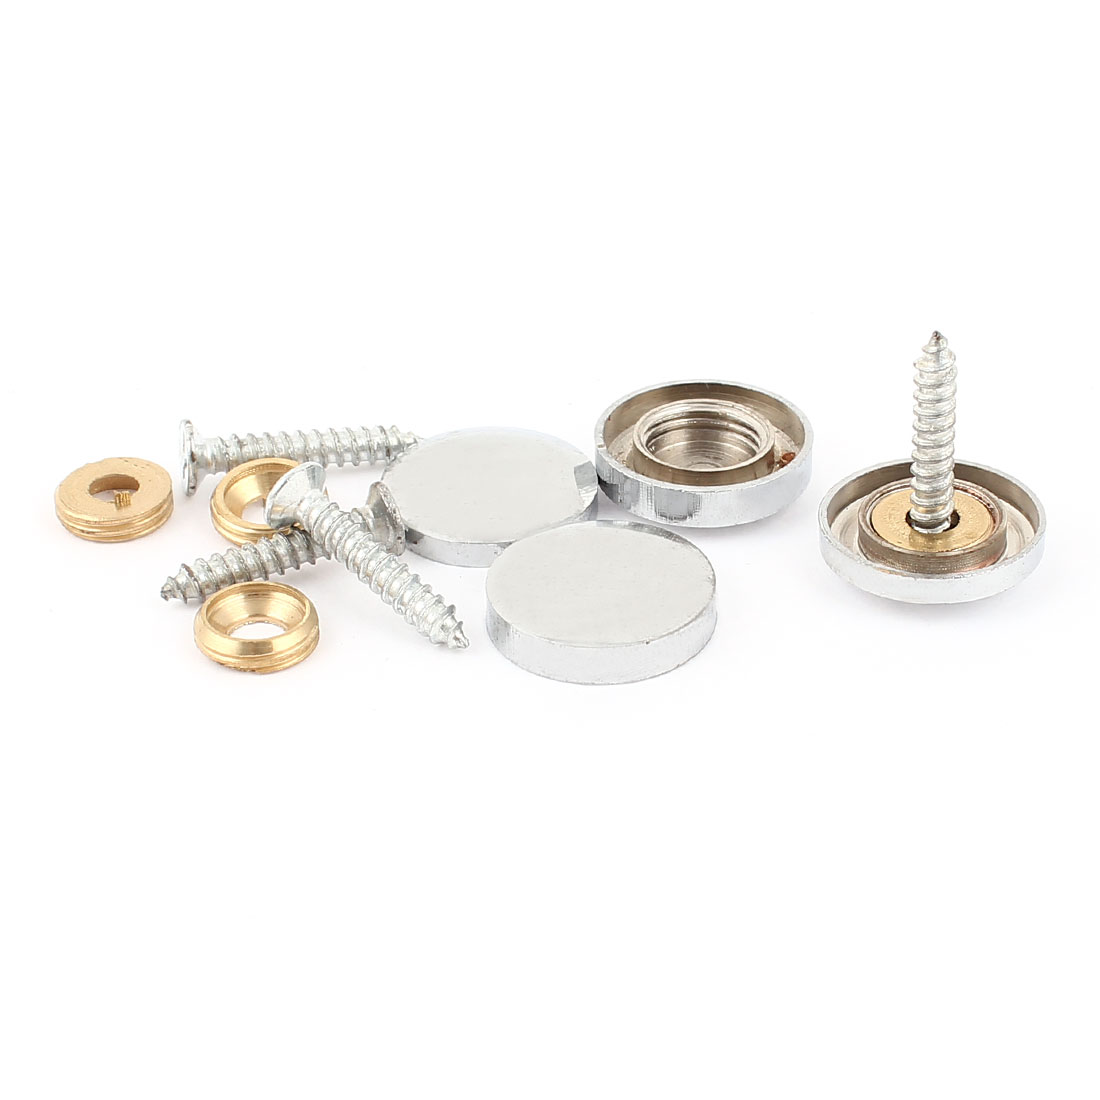 4 Pcs Silver Tone Decorative Fittings 18mm Screw Caps Tea Table Mirror Nails